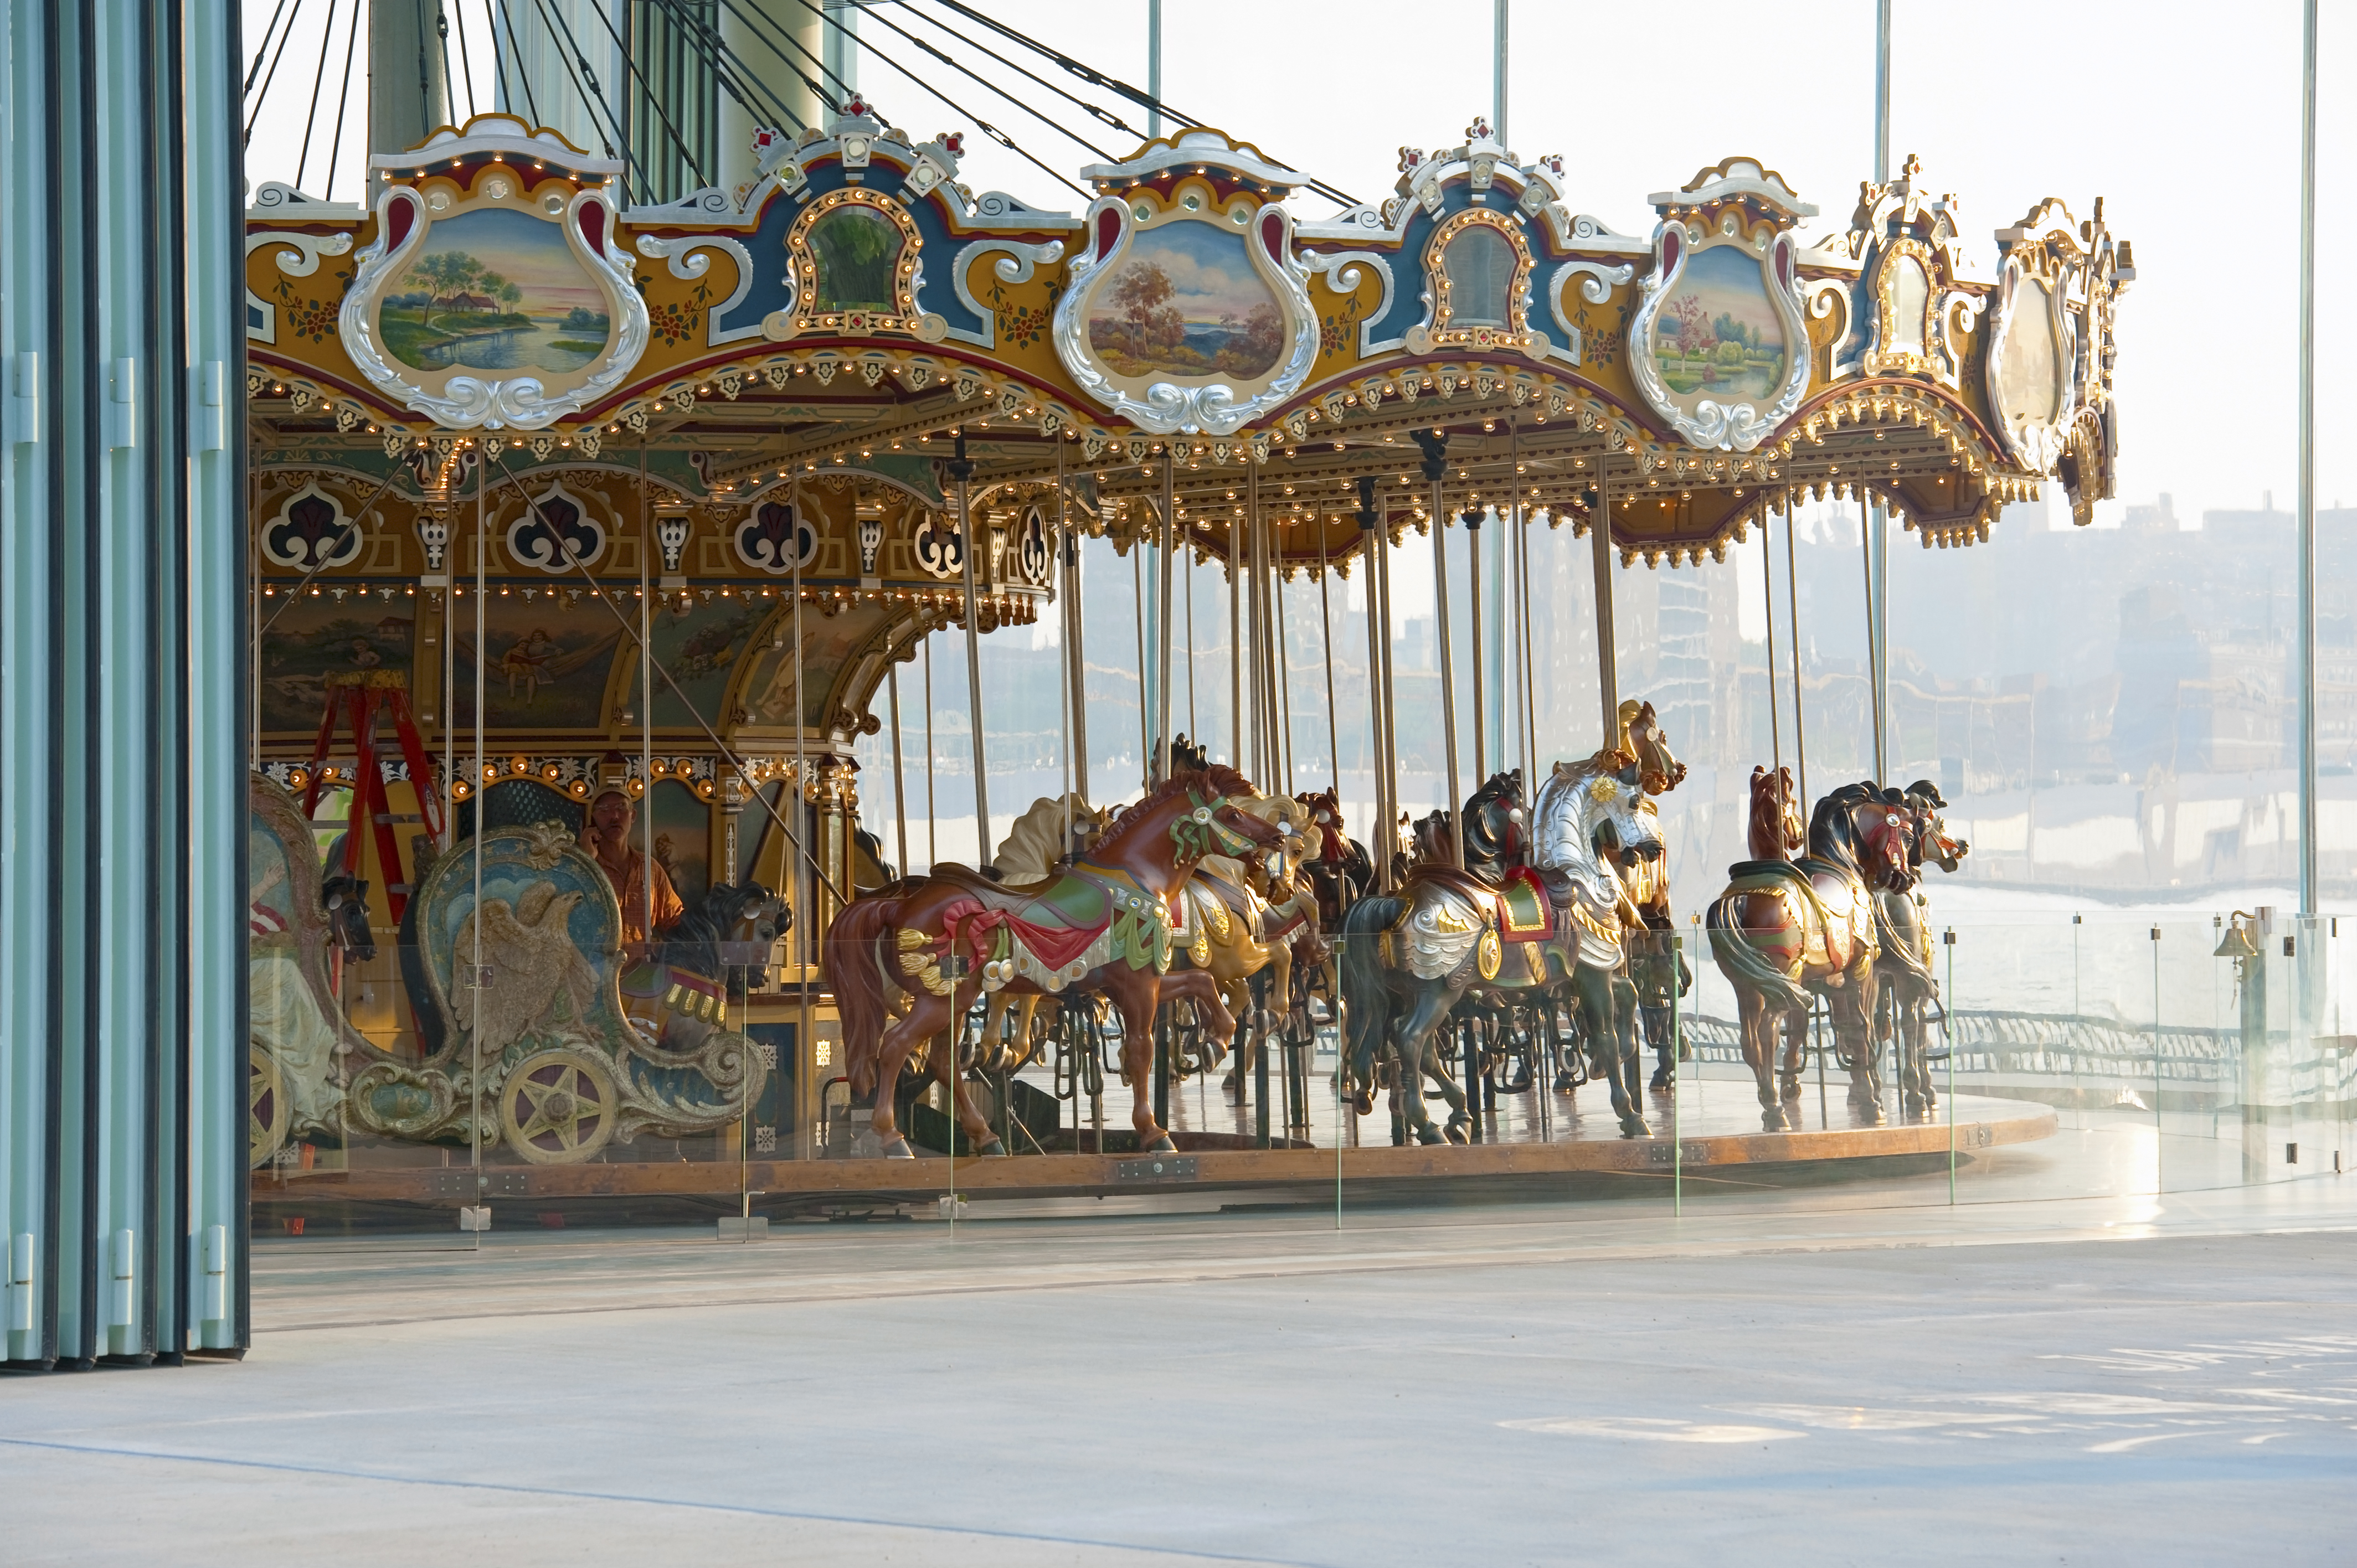 Central Park Zoo Carousel - Best Zoo Image 2018